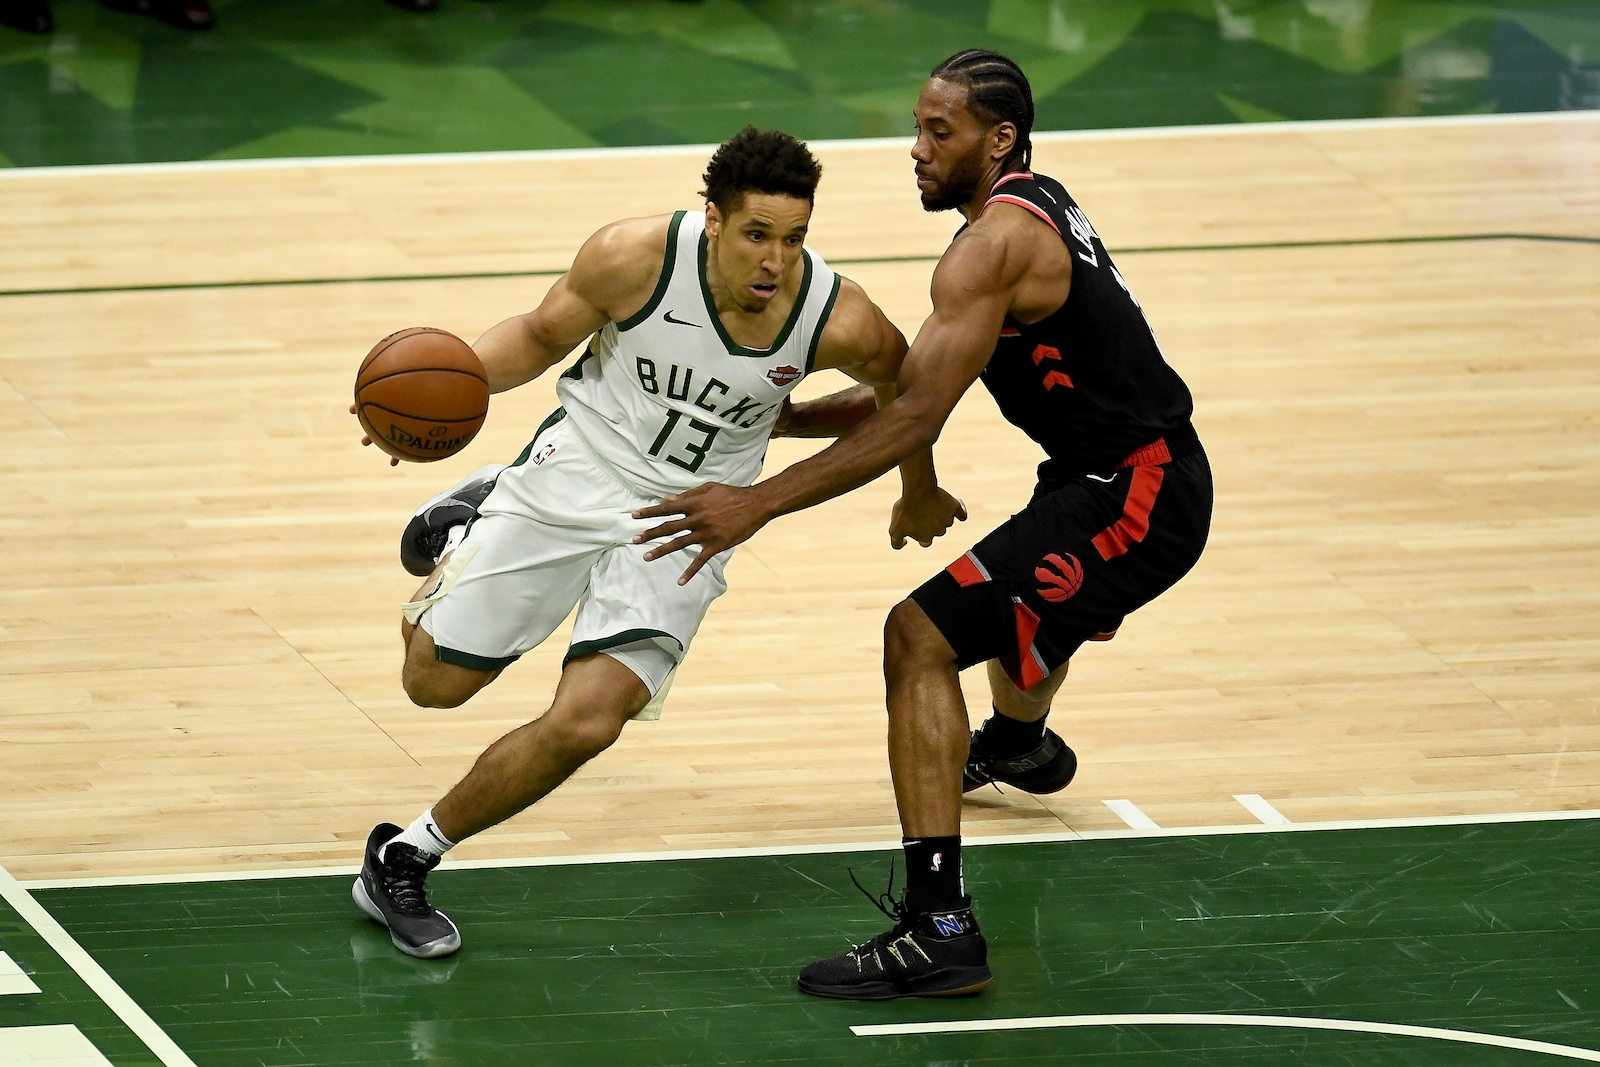 8c48dc4cdf9c Malcolm Brogdon  13 of the Milwaukee Bucks dribbles the ball while being  guarded by Kawhi